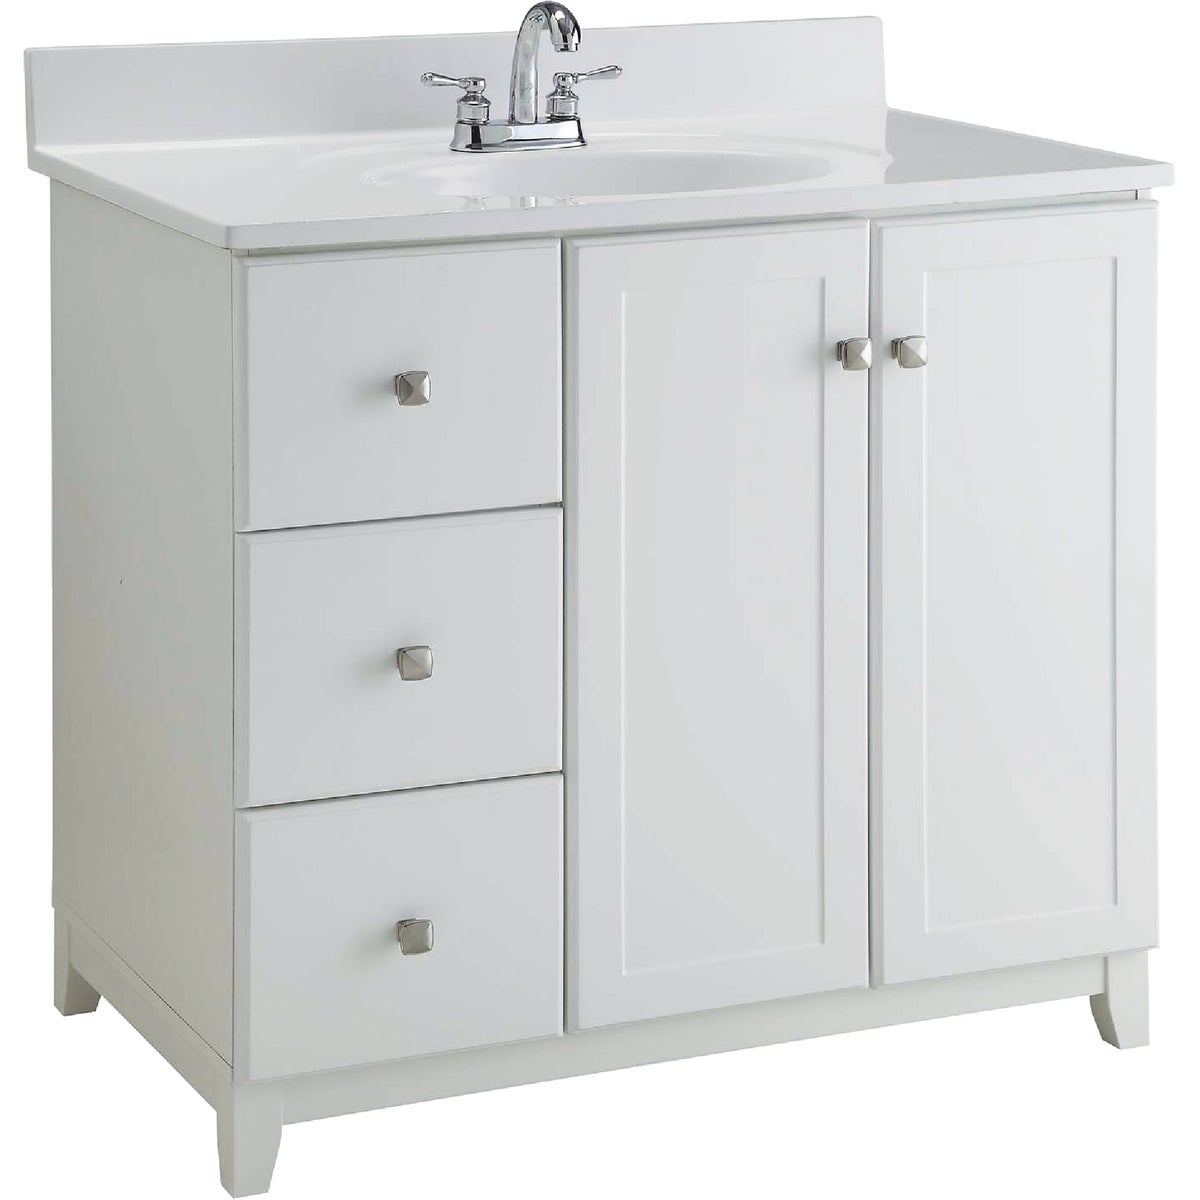 36X21 WHITE VANITY - 545095 by Design House  Dhi